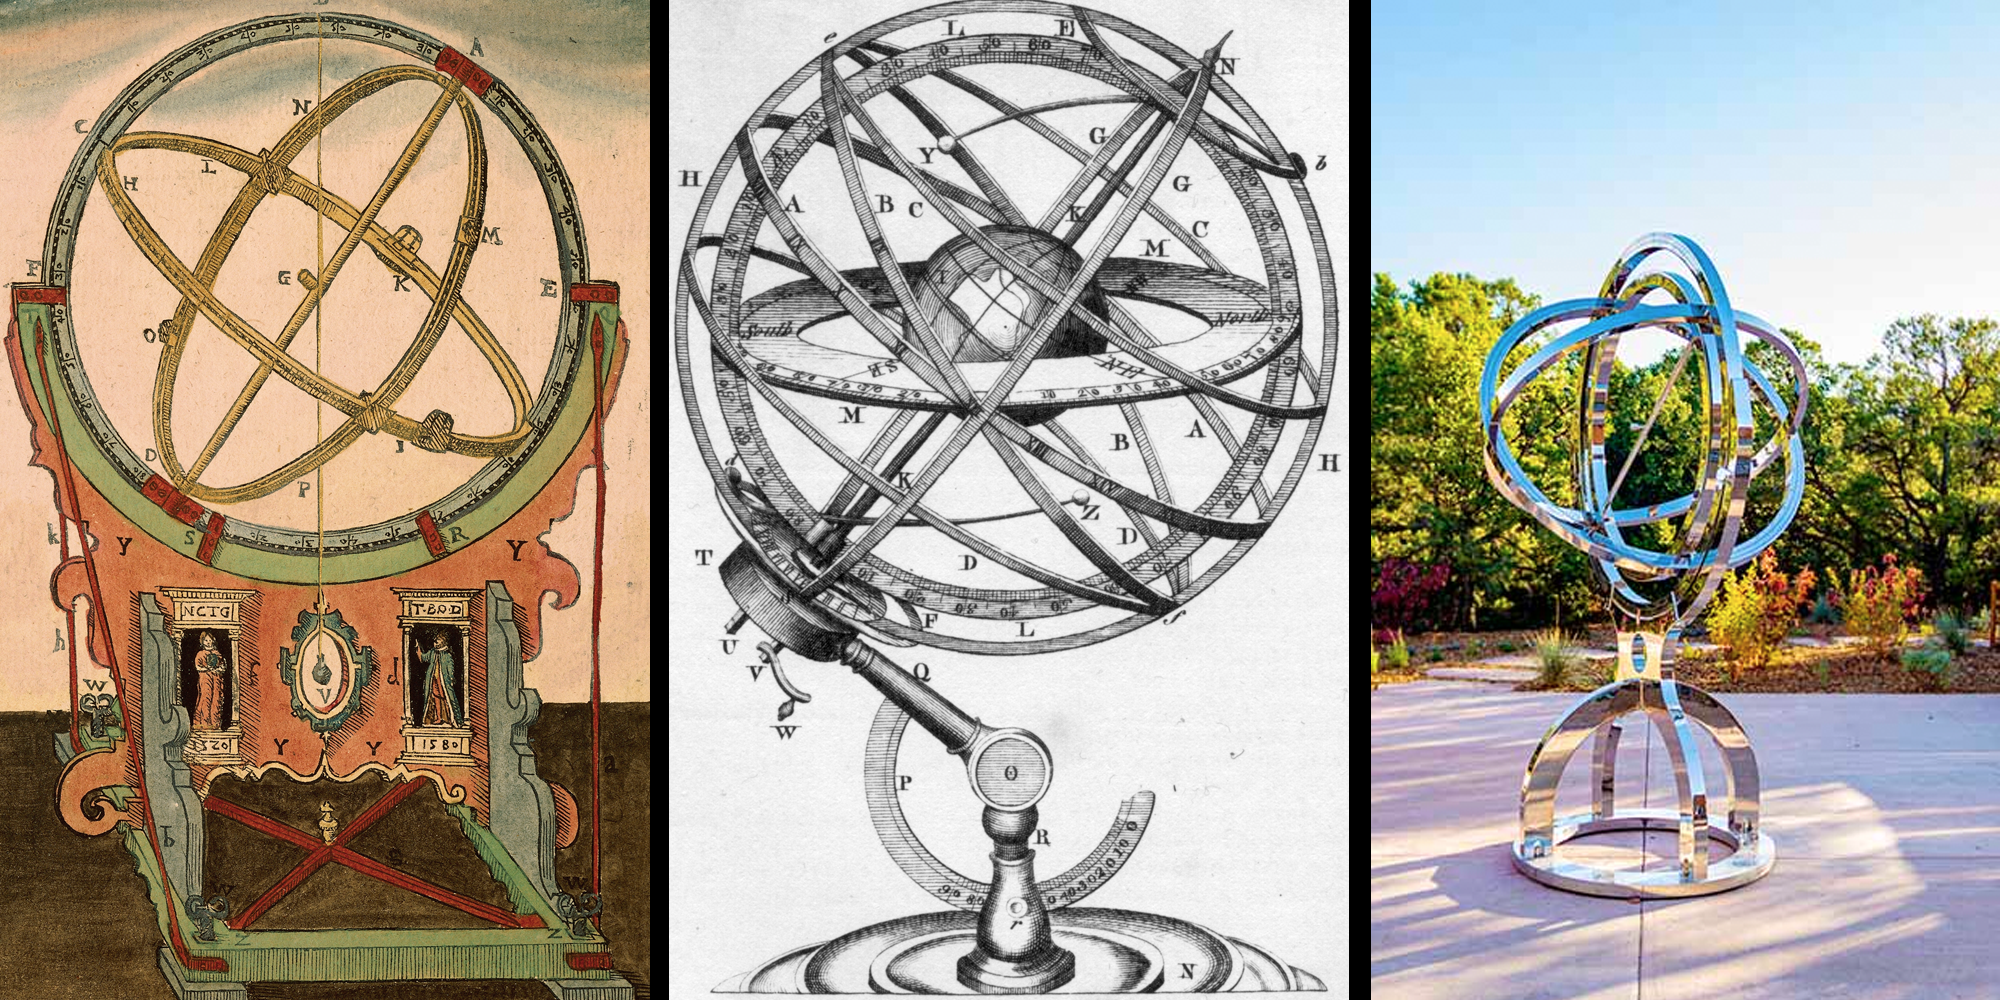 This Is the Only Working Armillary Sphere on Earth